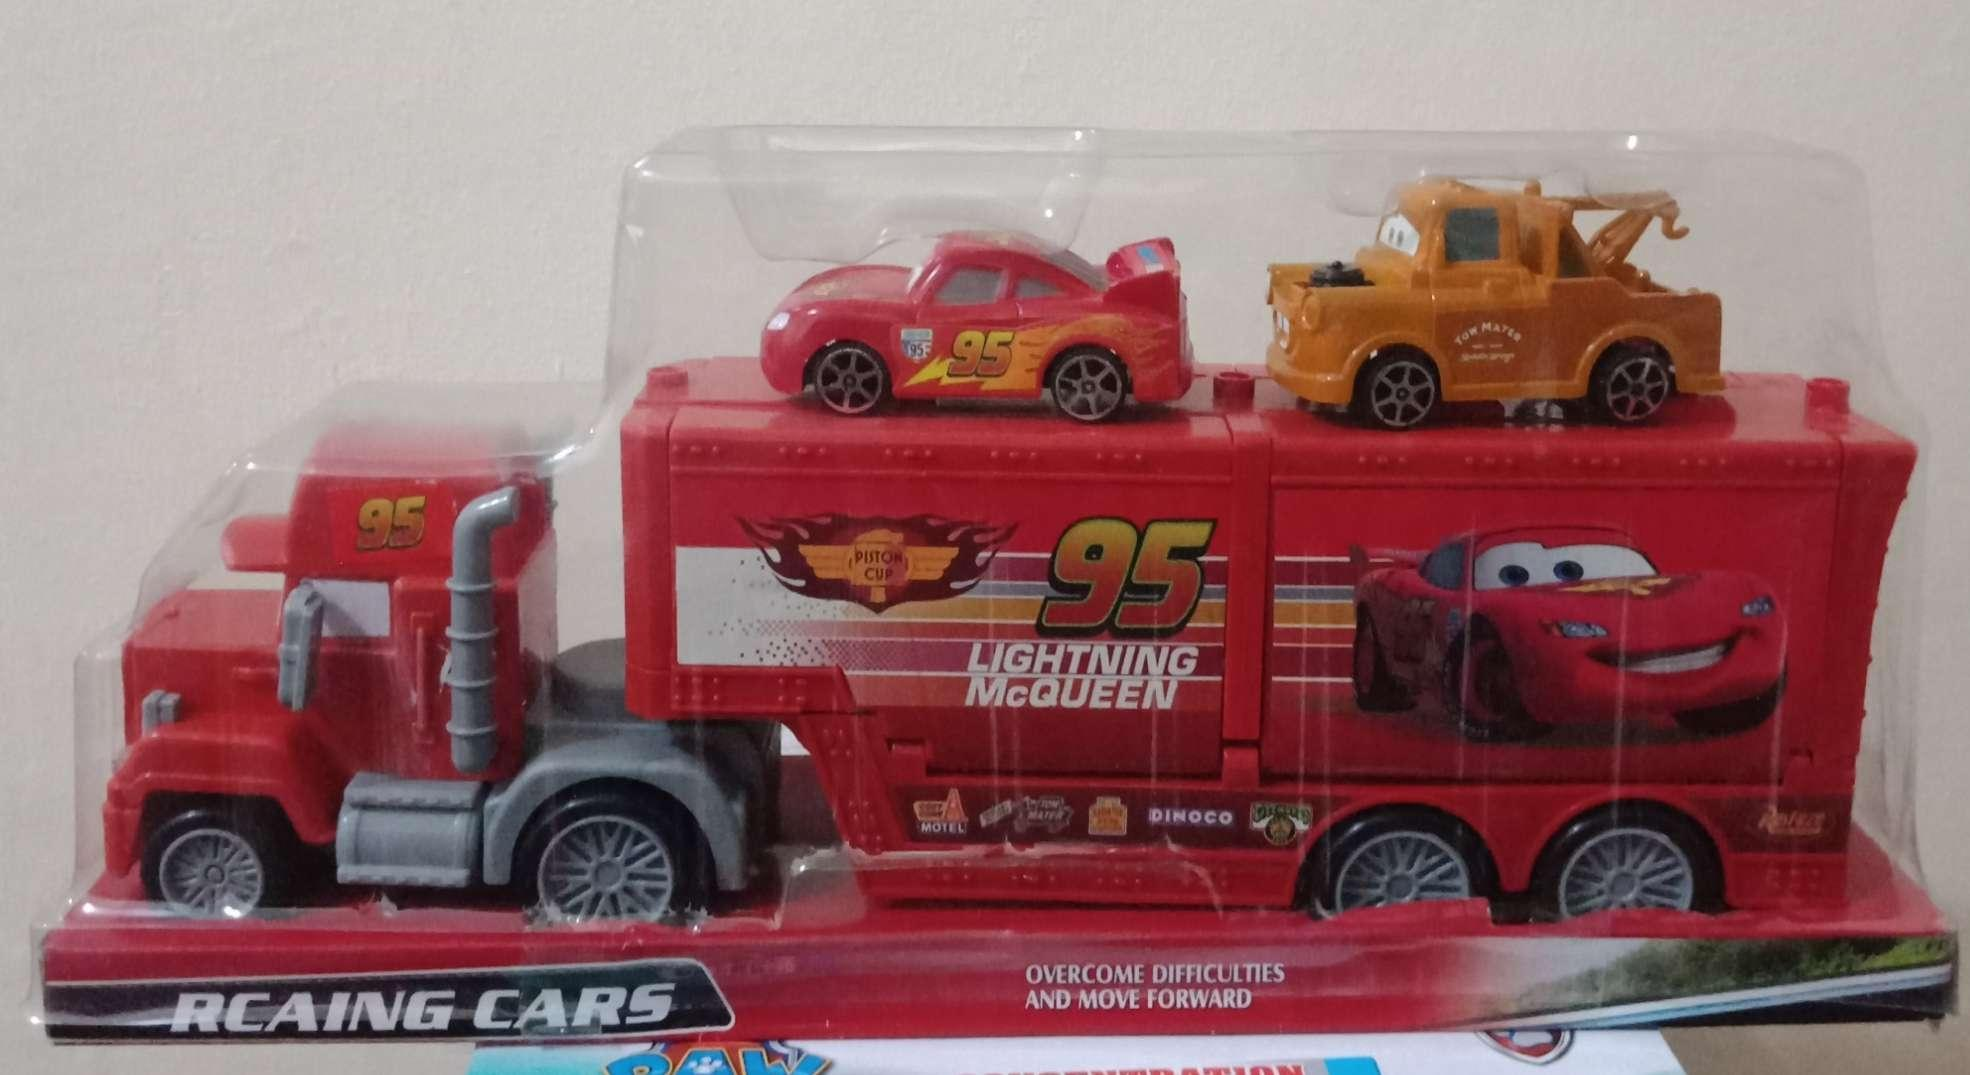 Cars Philippines Cars Price List Cars Merchandise Toy For Sale